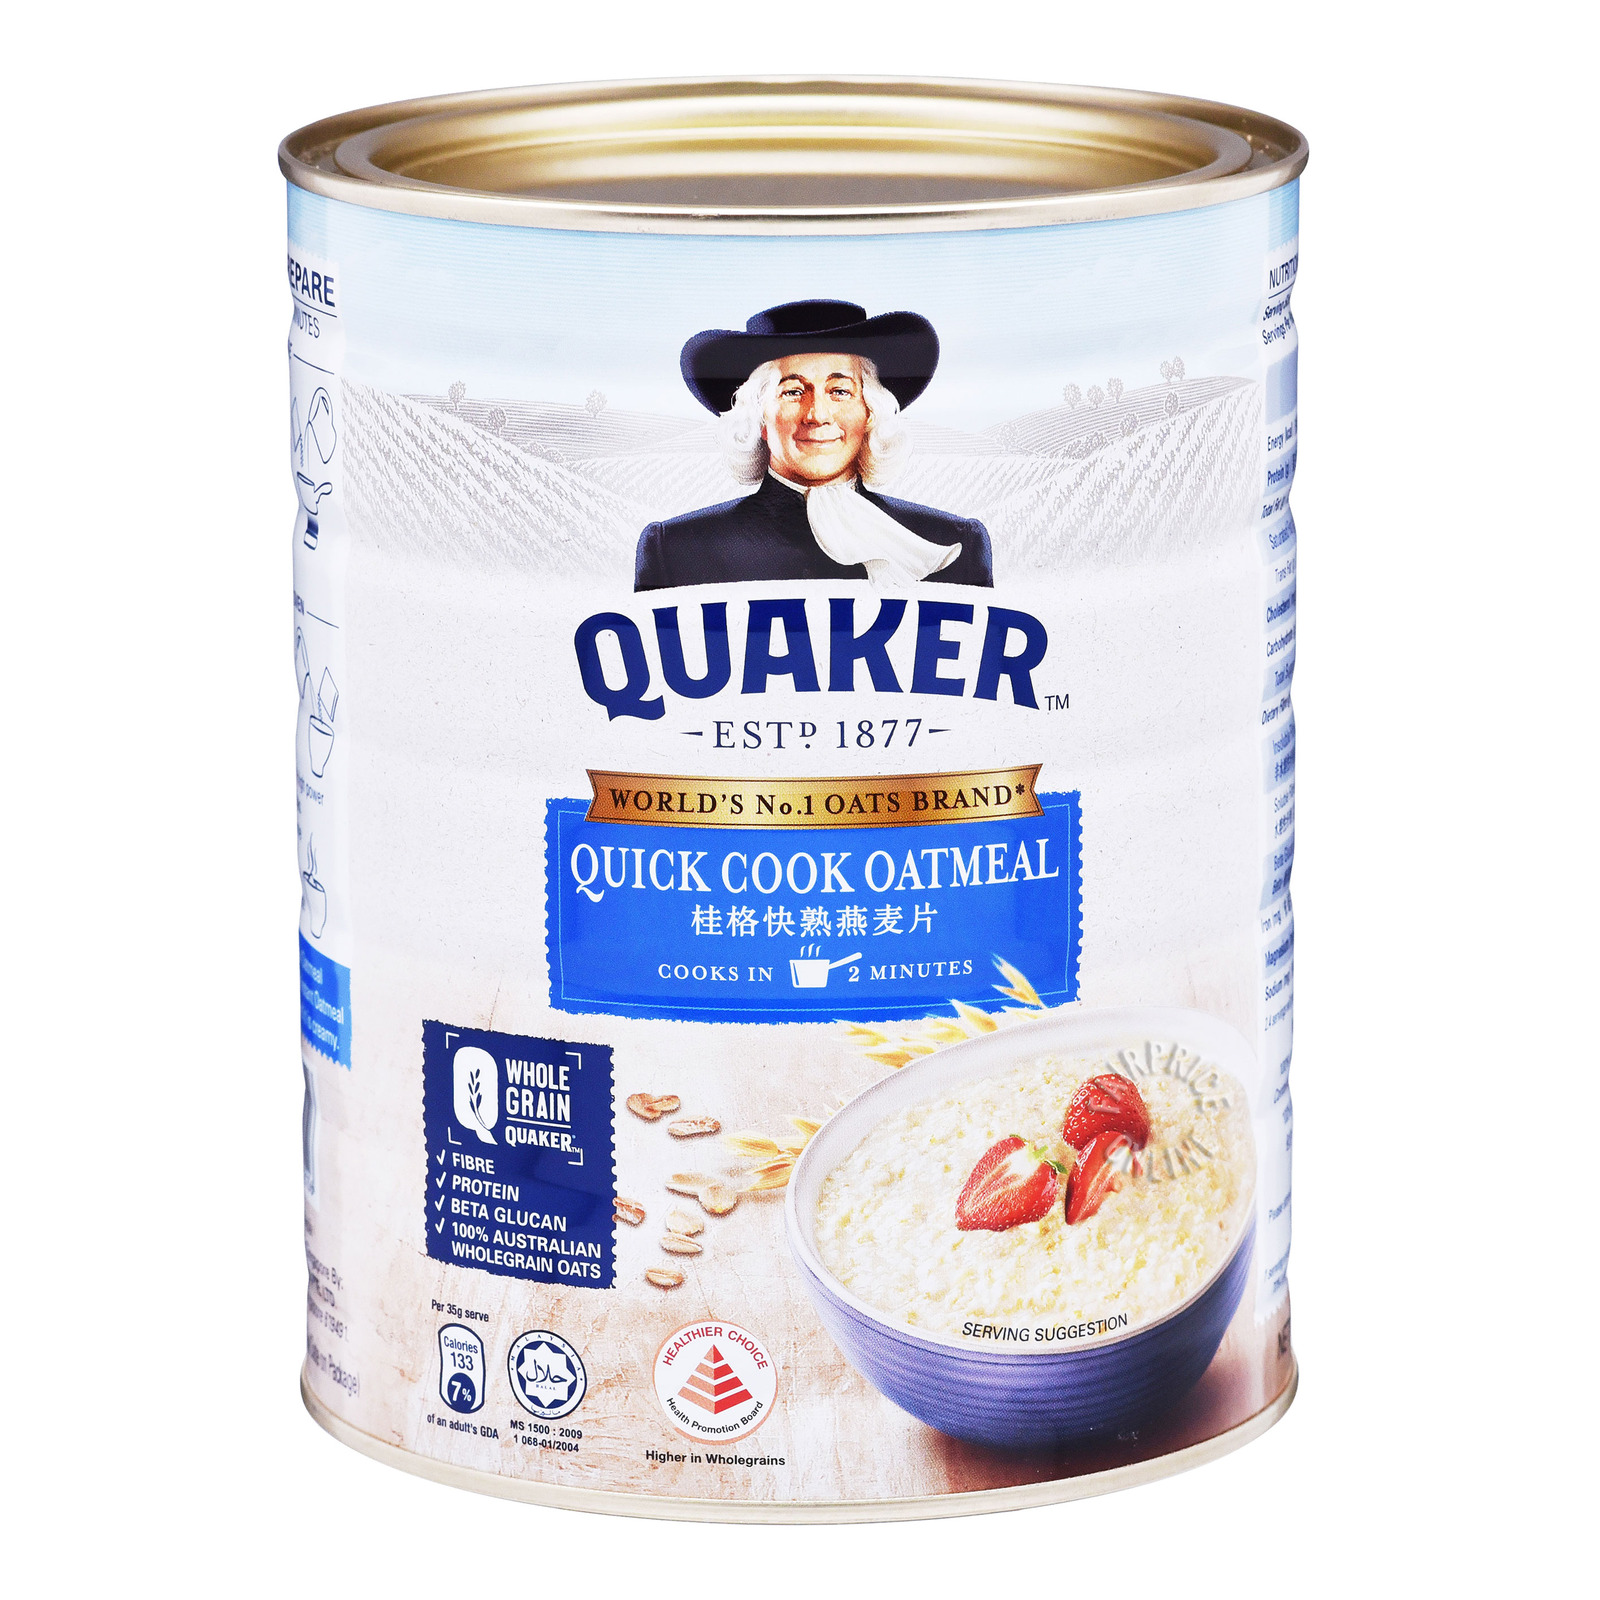 Quaker 100% Wholegrain Oatmeal - Quick Cook